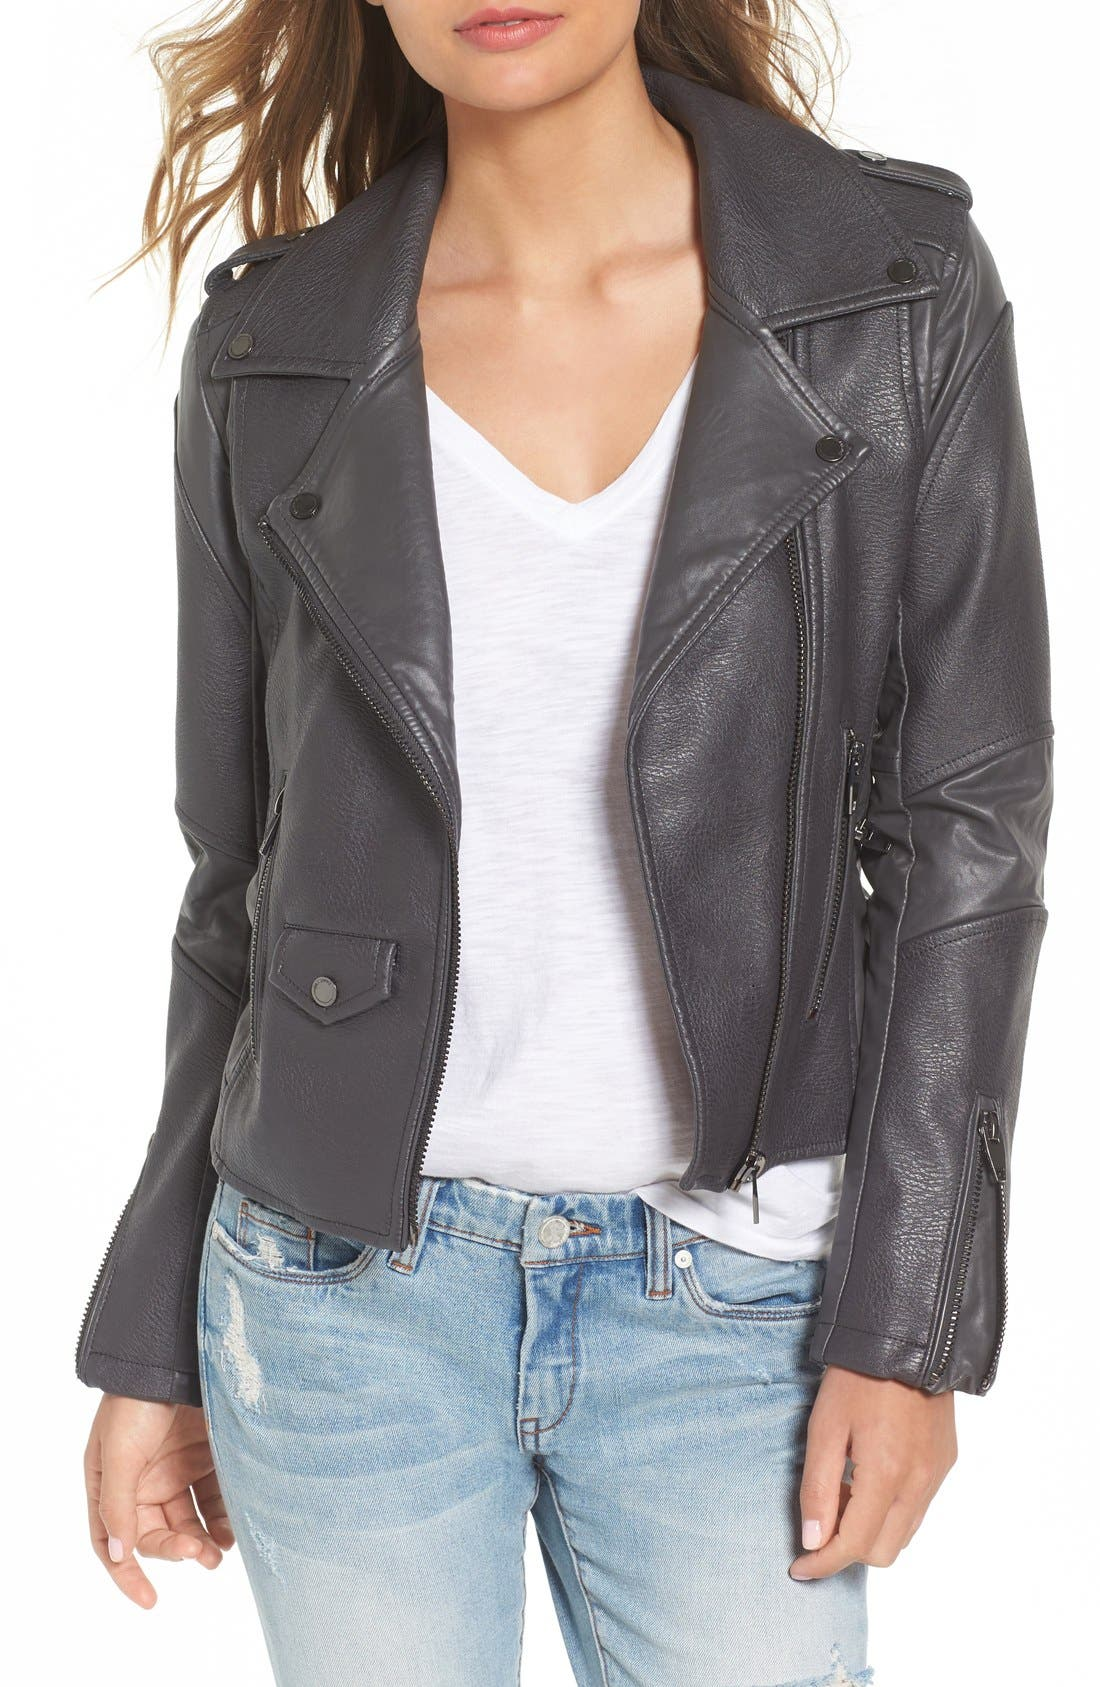 Alternate Image 1 Selected - BLANKNYC 'Easy Rider' Faux Leather Moto Jacket